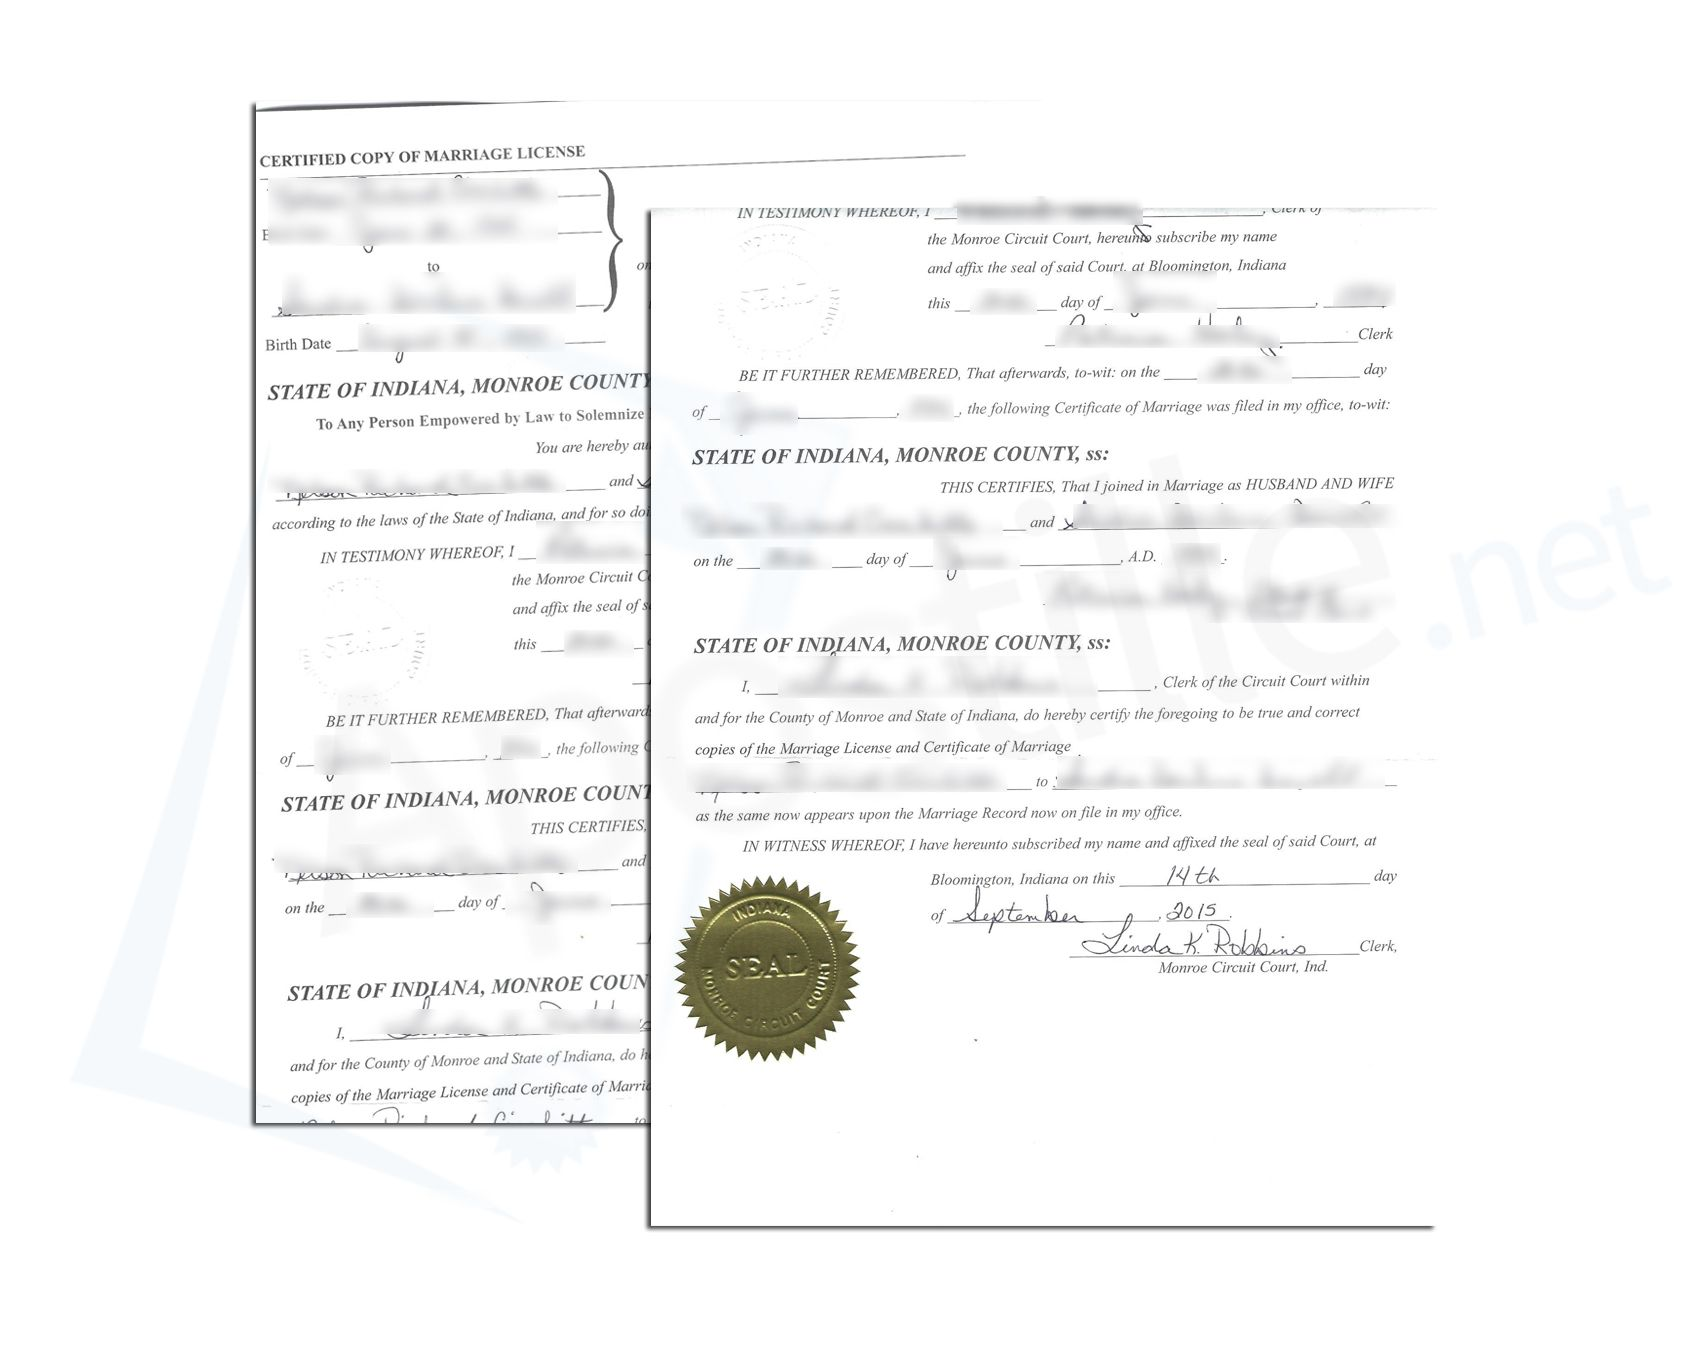 State Of Indiana Monroe County Certified Copy Of Marriage License